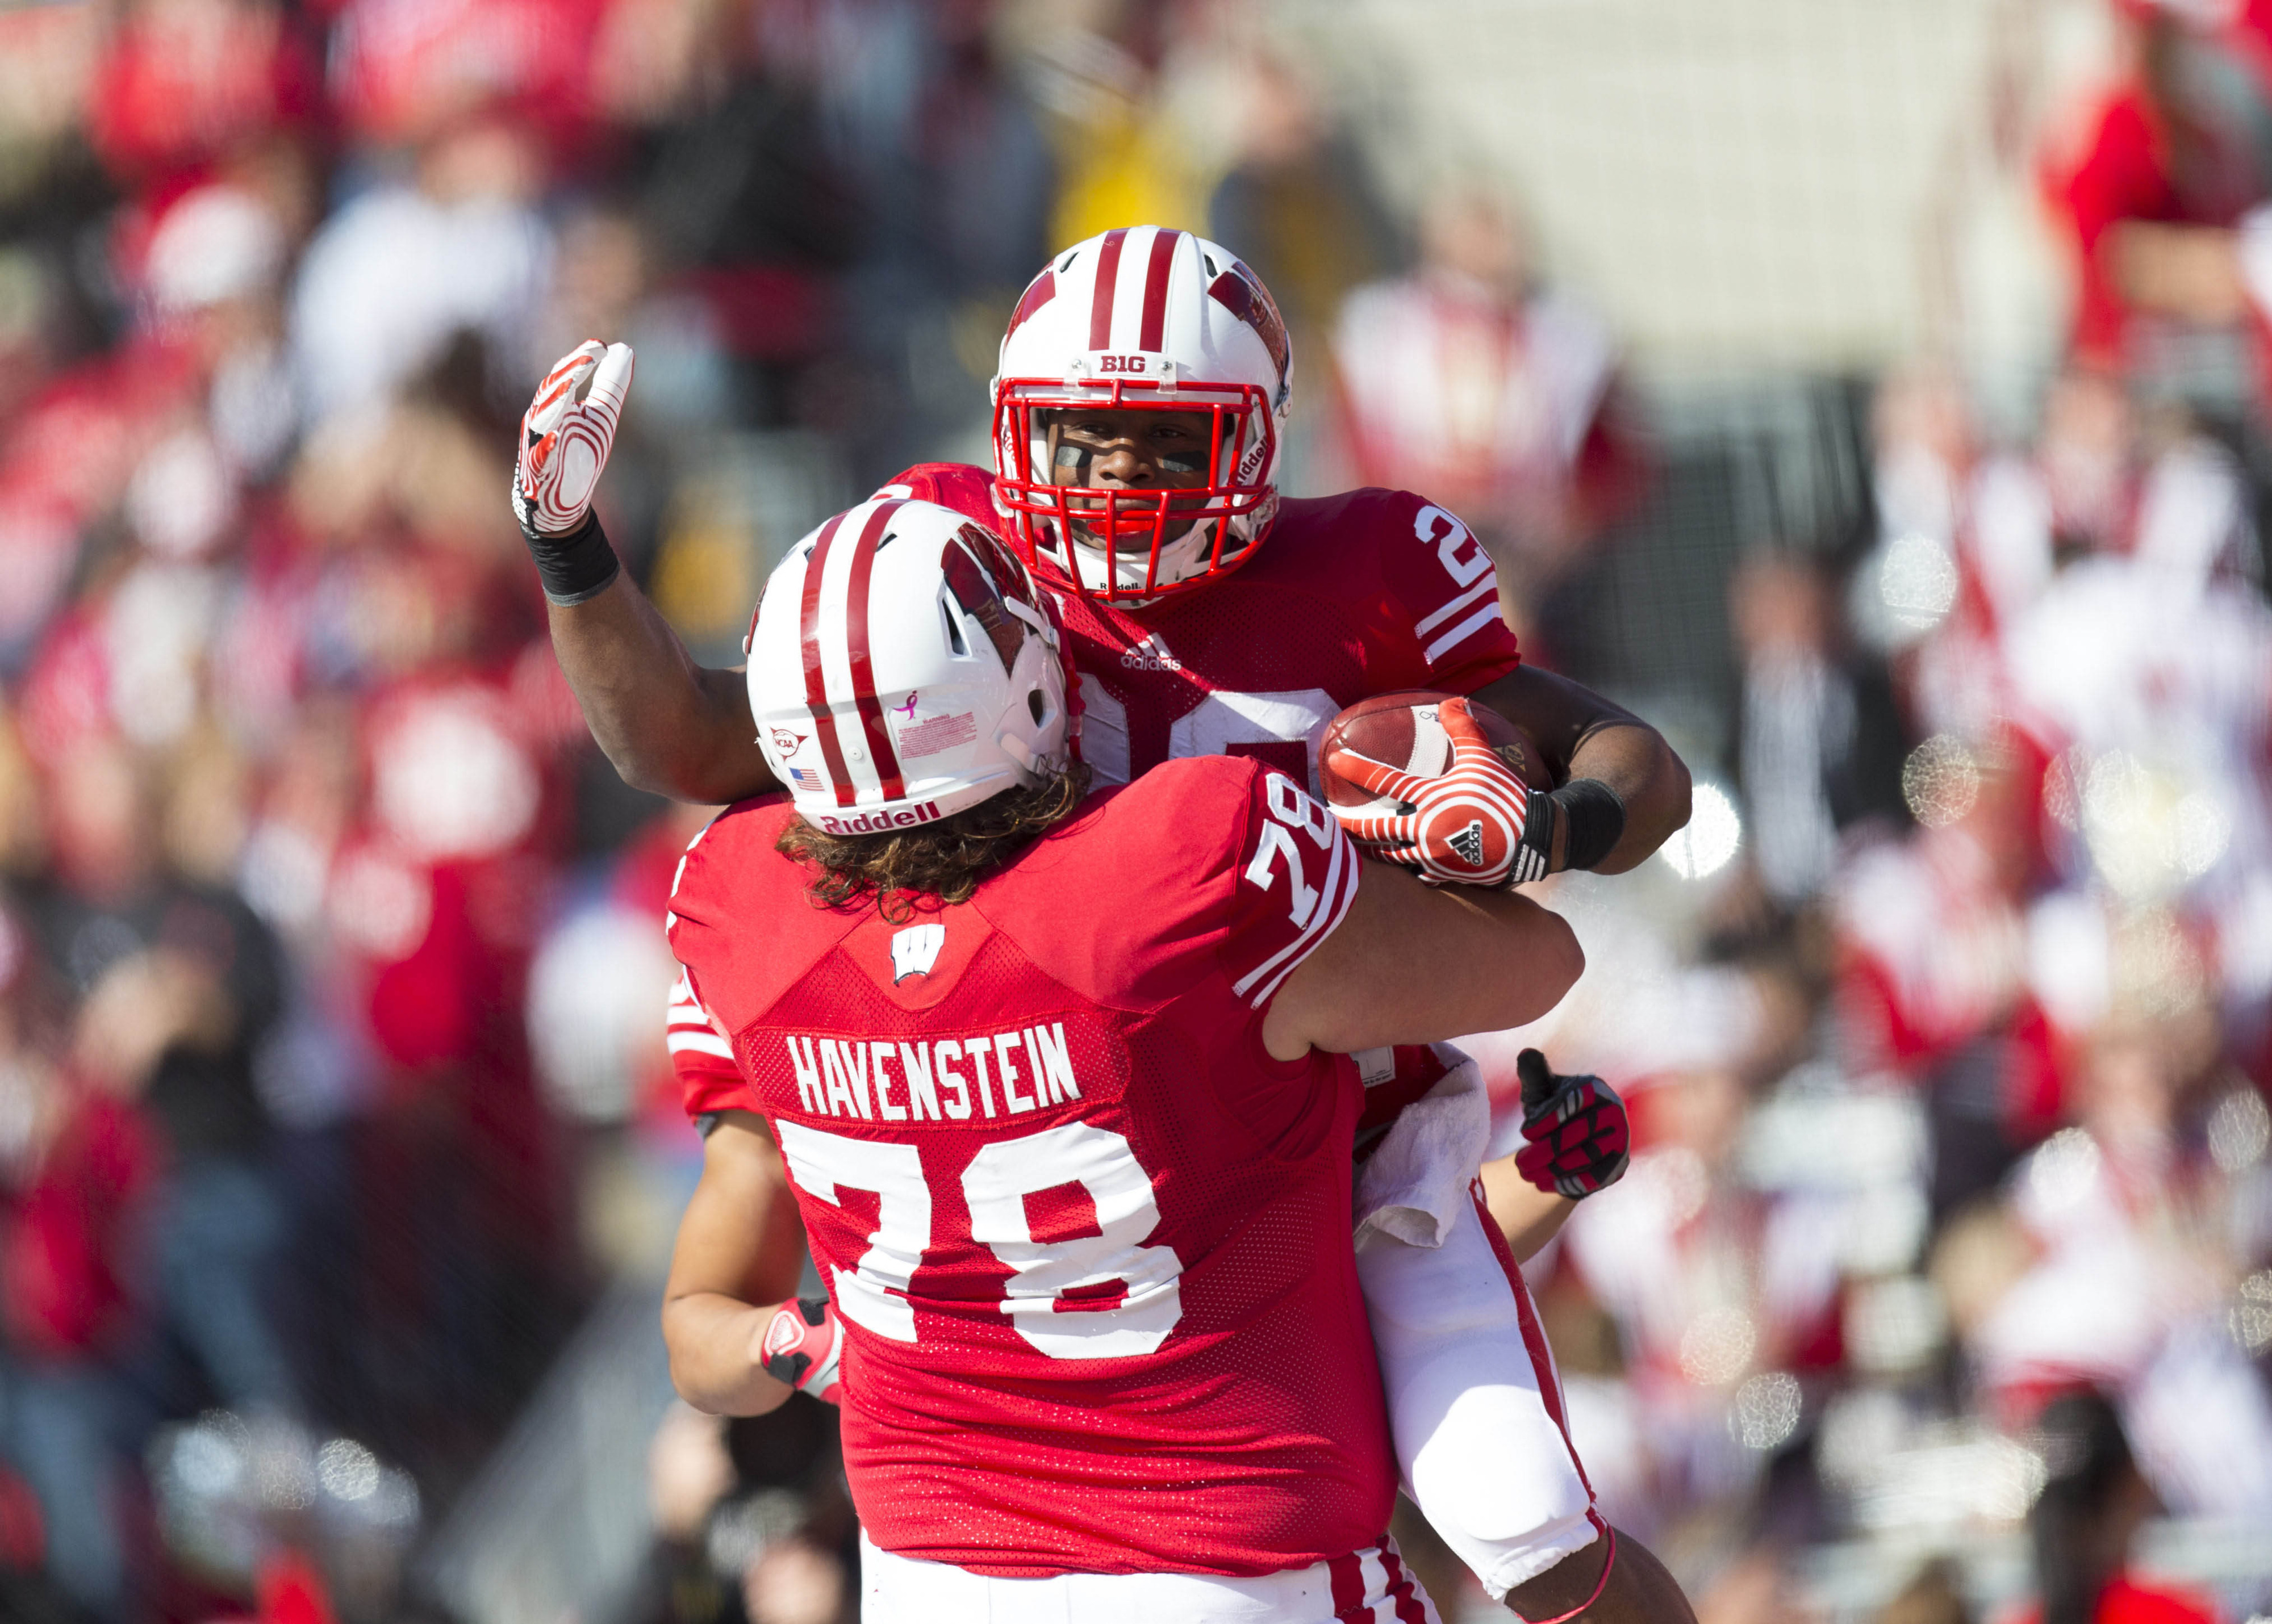 James White (leaping) gave the Badgers plenty to celebrate on Saturday.